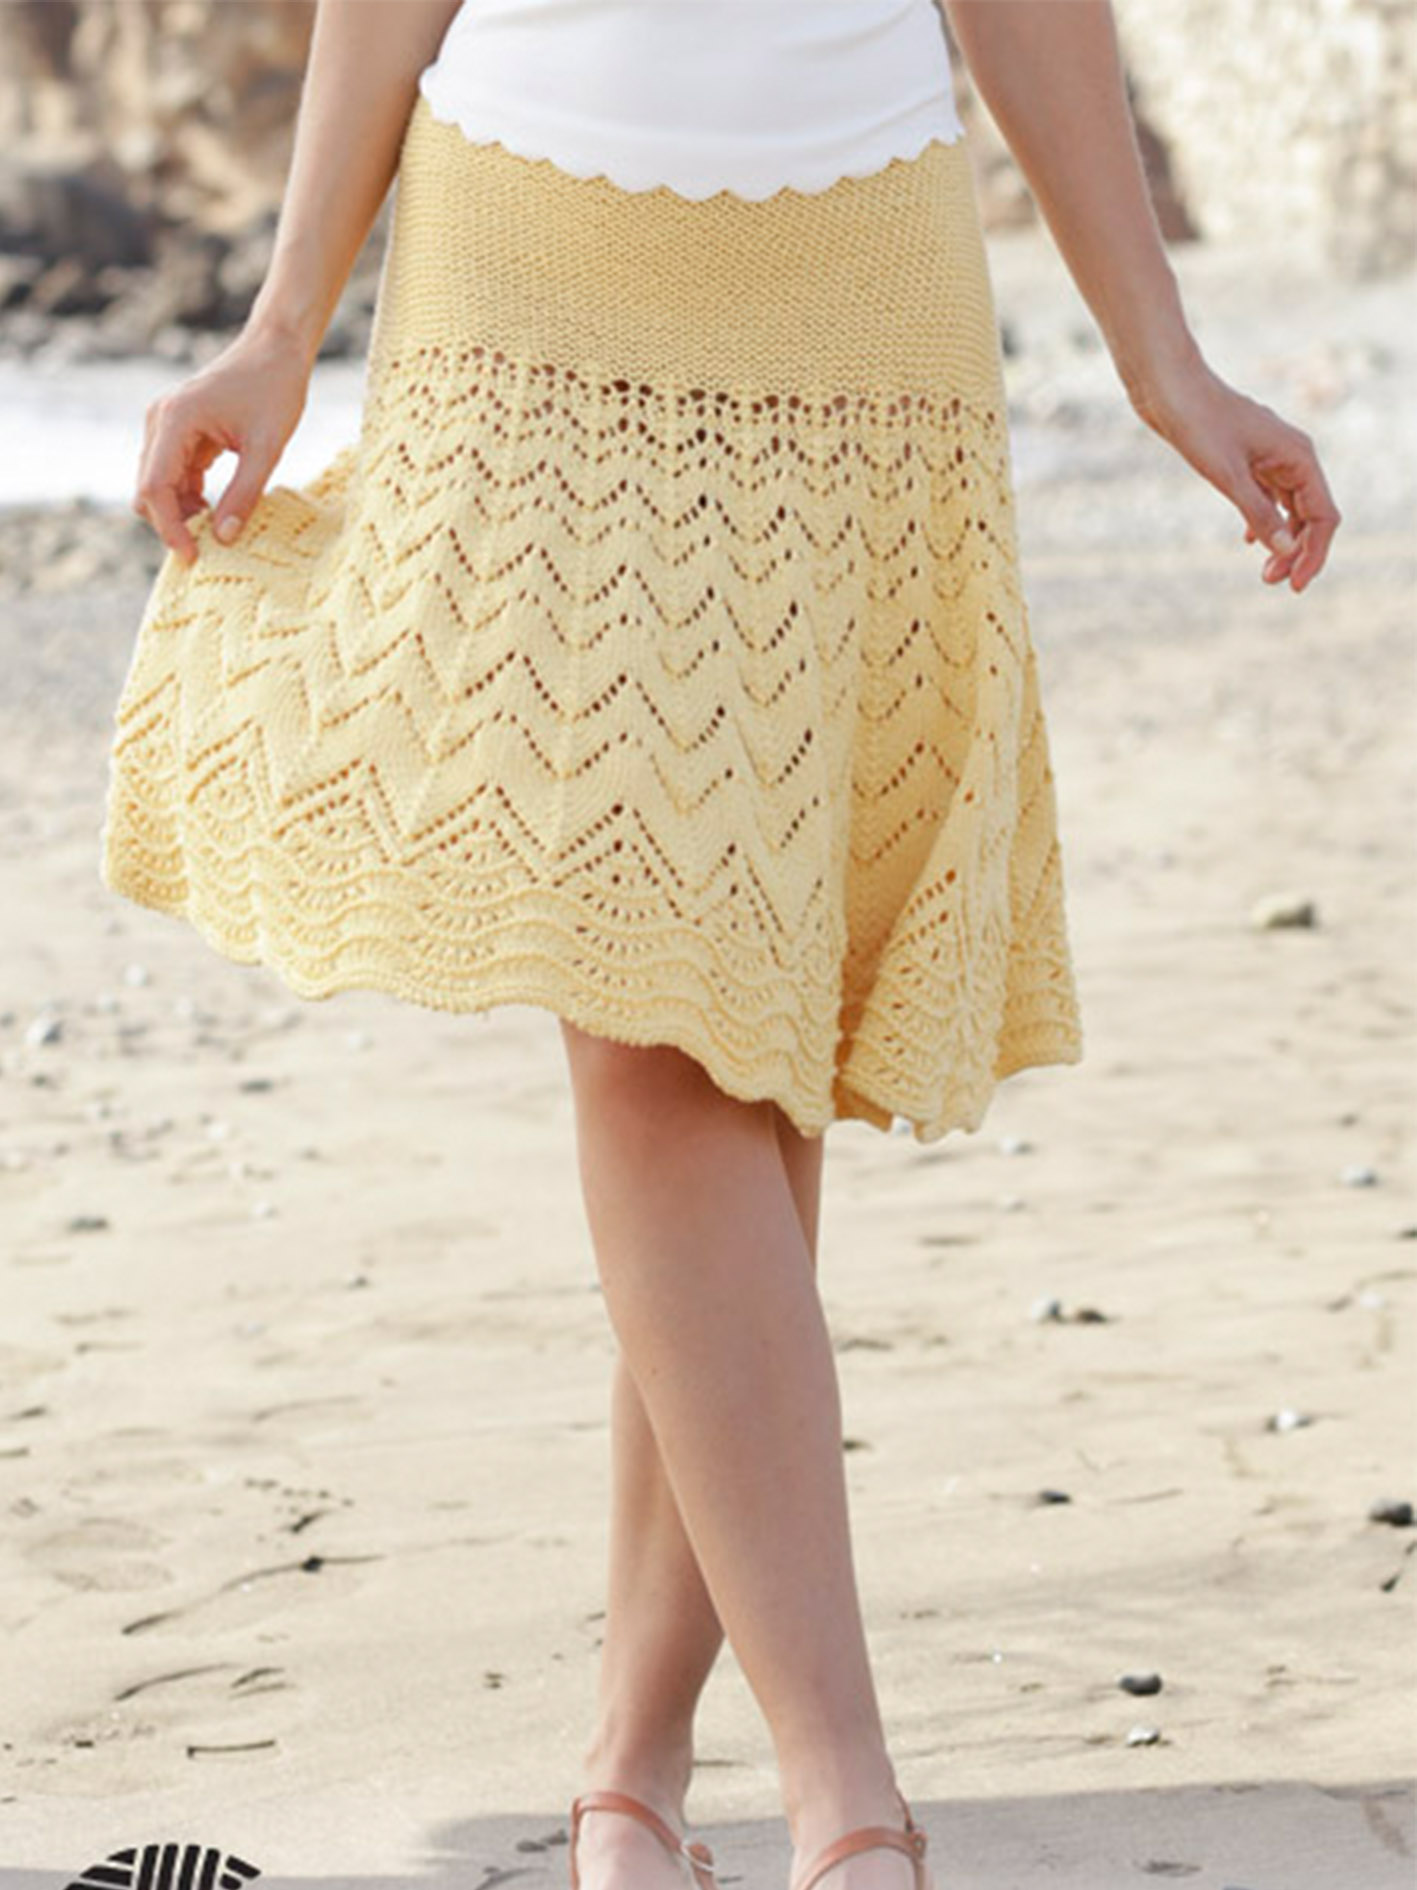 top-30-fabulous-free-patterns-for-crochet-skirts-2019